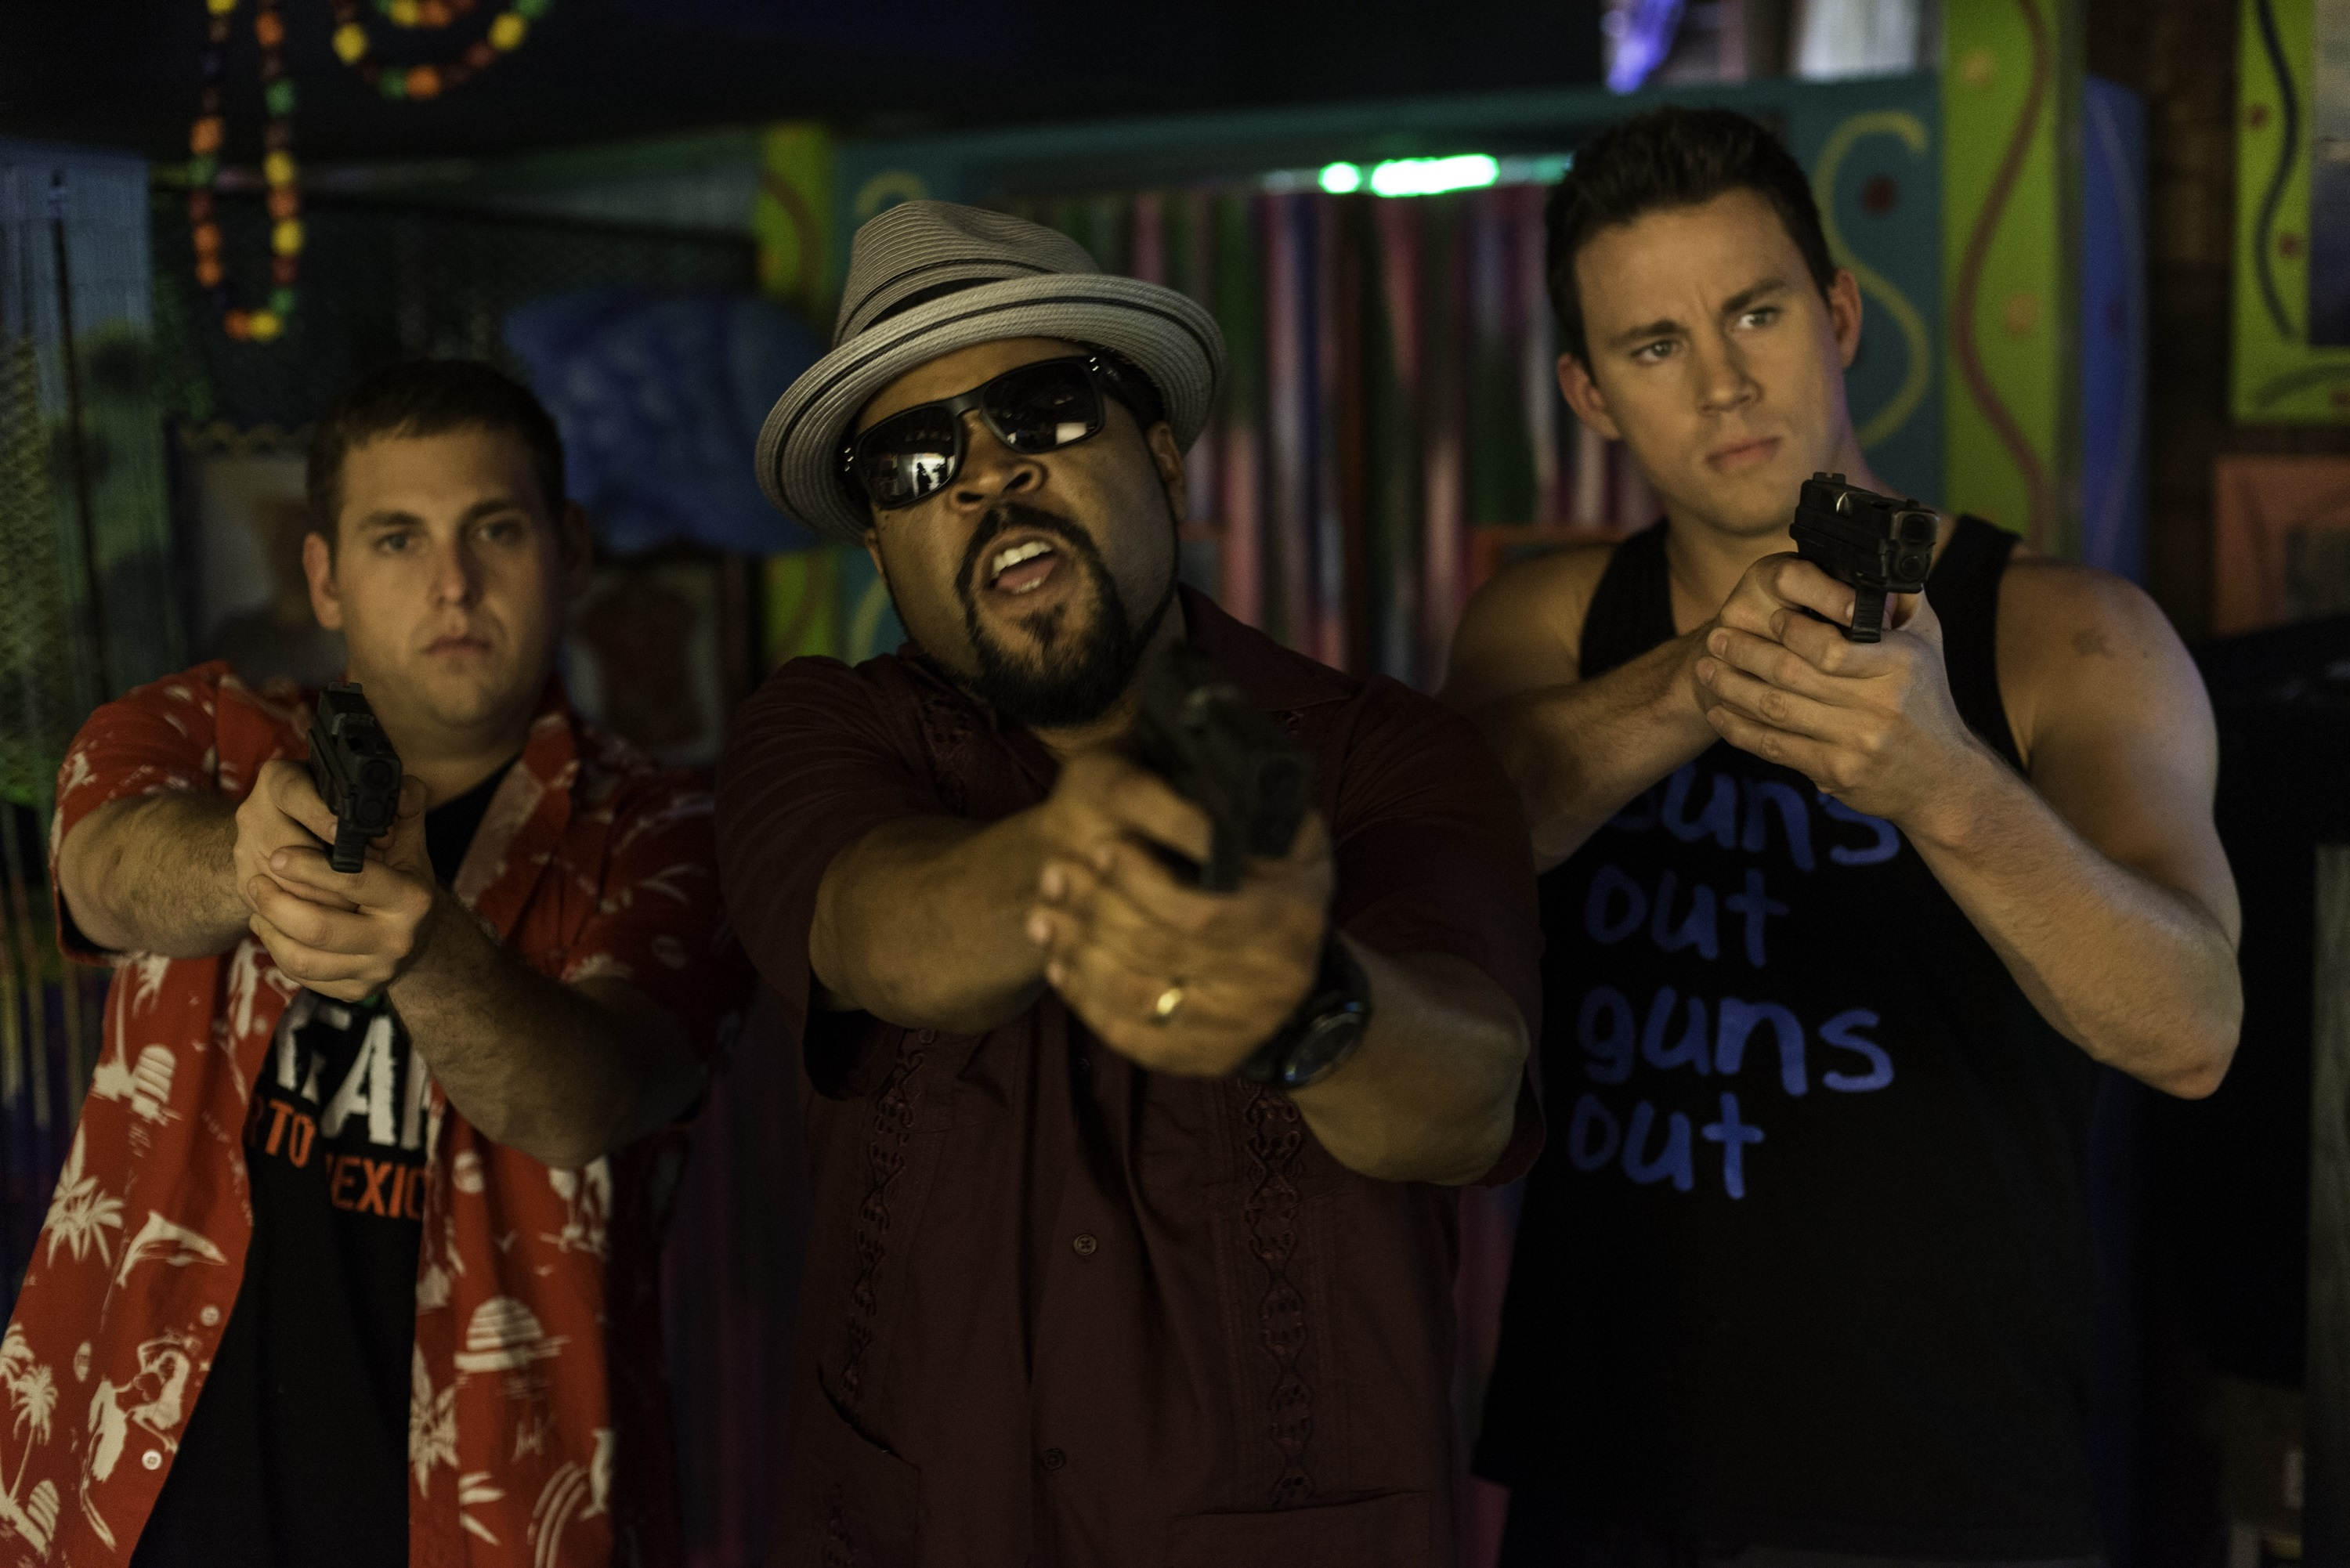 22 JUMP STREET-Official Poster Banner PROMO PHOTOS-04ABRIL2014-01